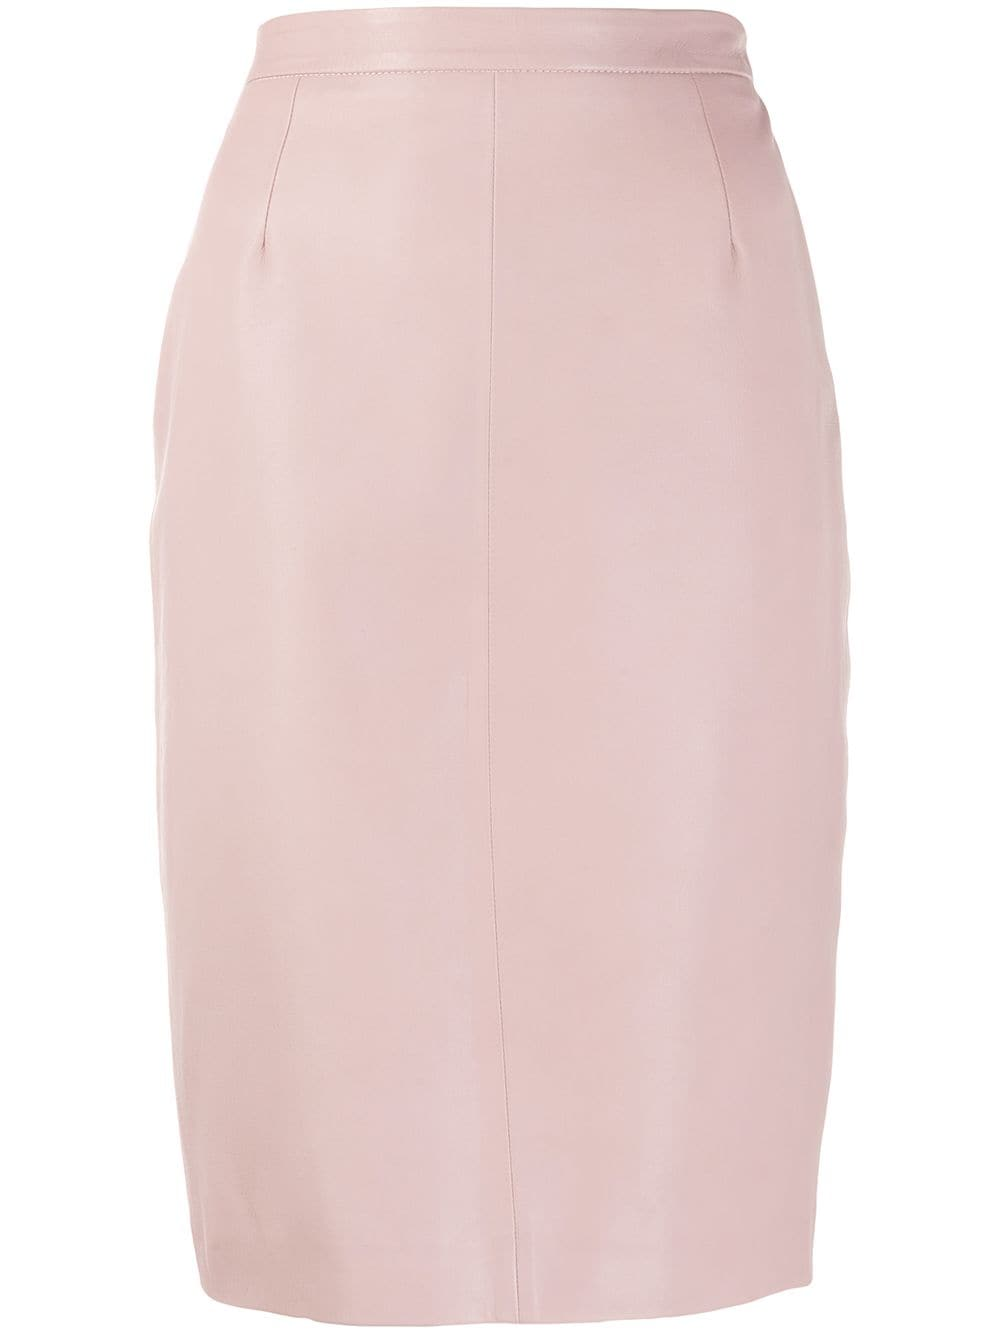 Red Valentino leather pencil skirt